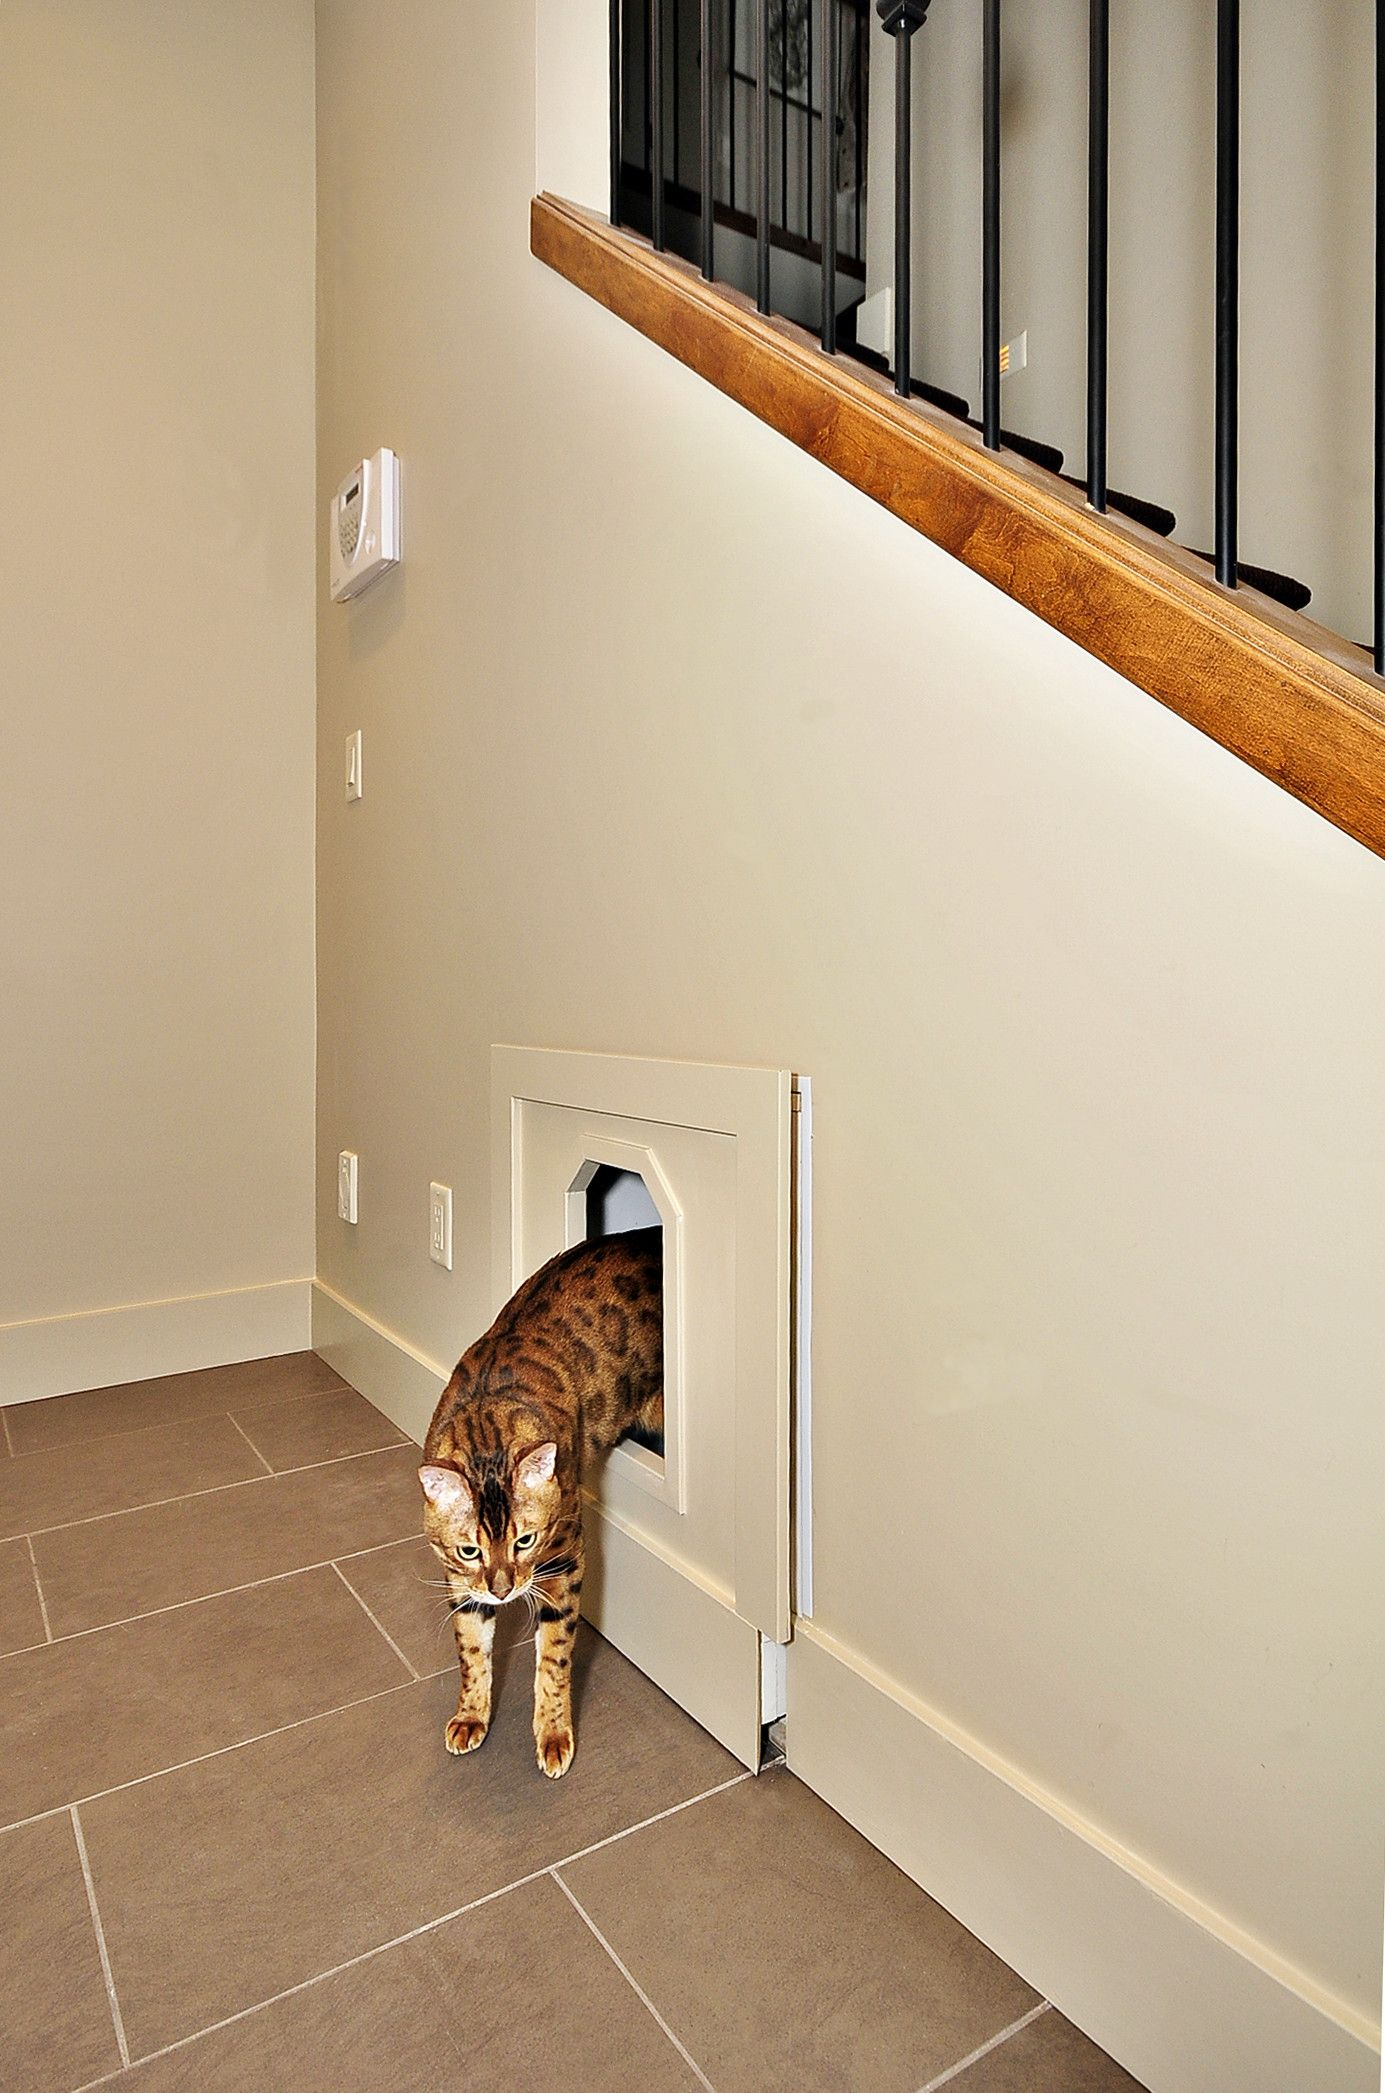 The 10 Best Hidden Cat Litter Box Ideas Hiding Cat Litter Box Room Under Stairs Animal Room